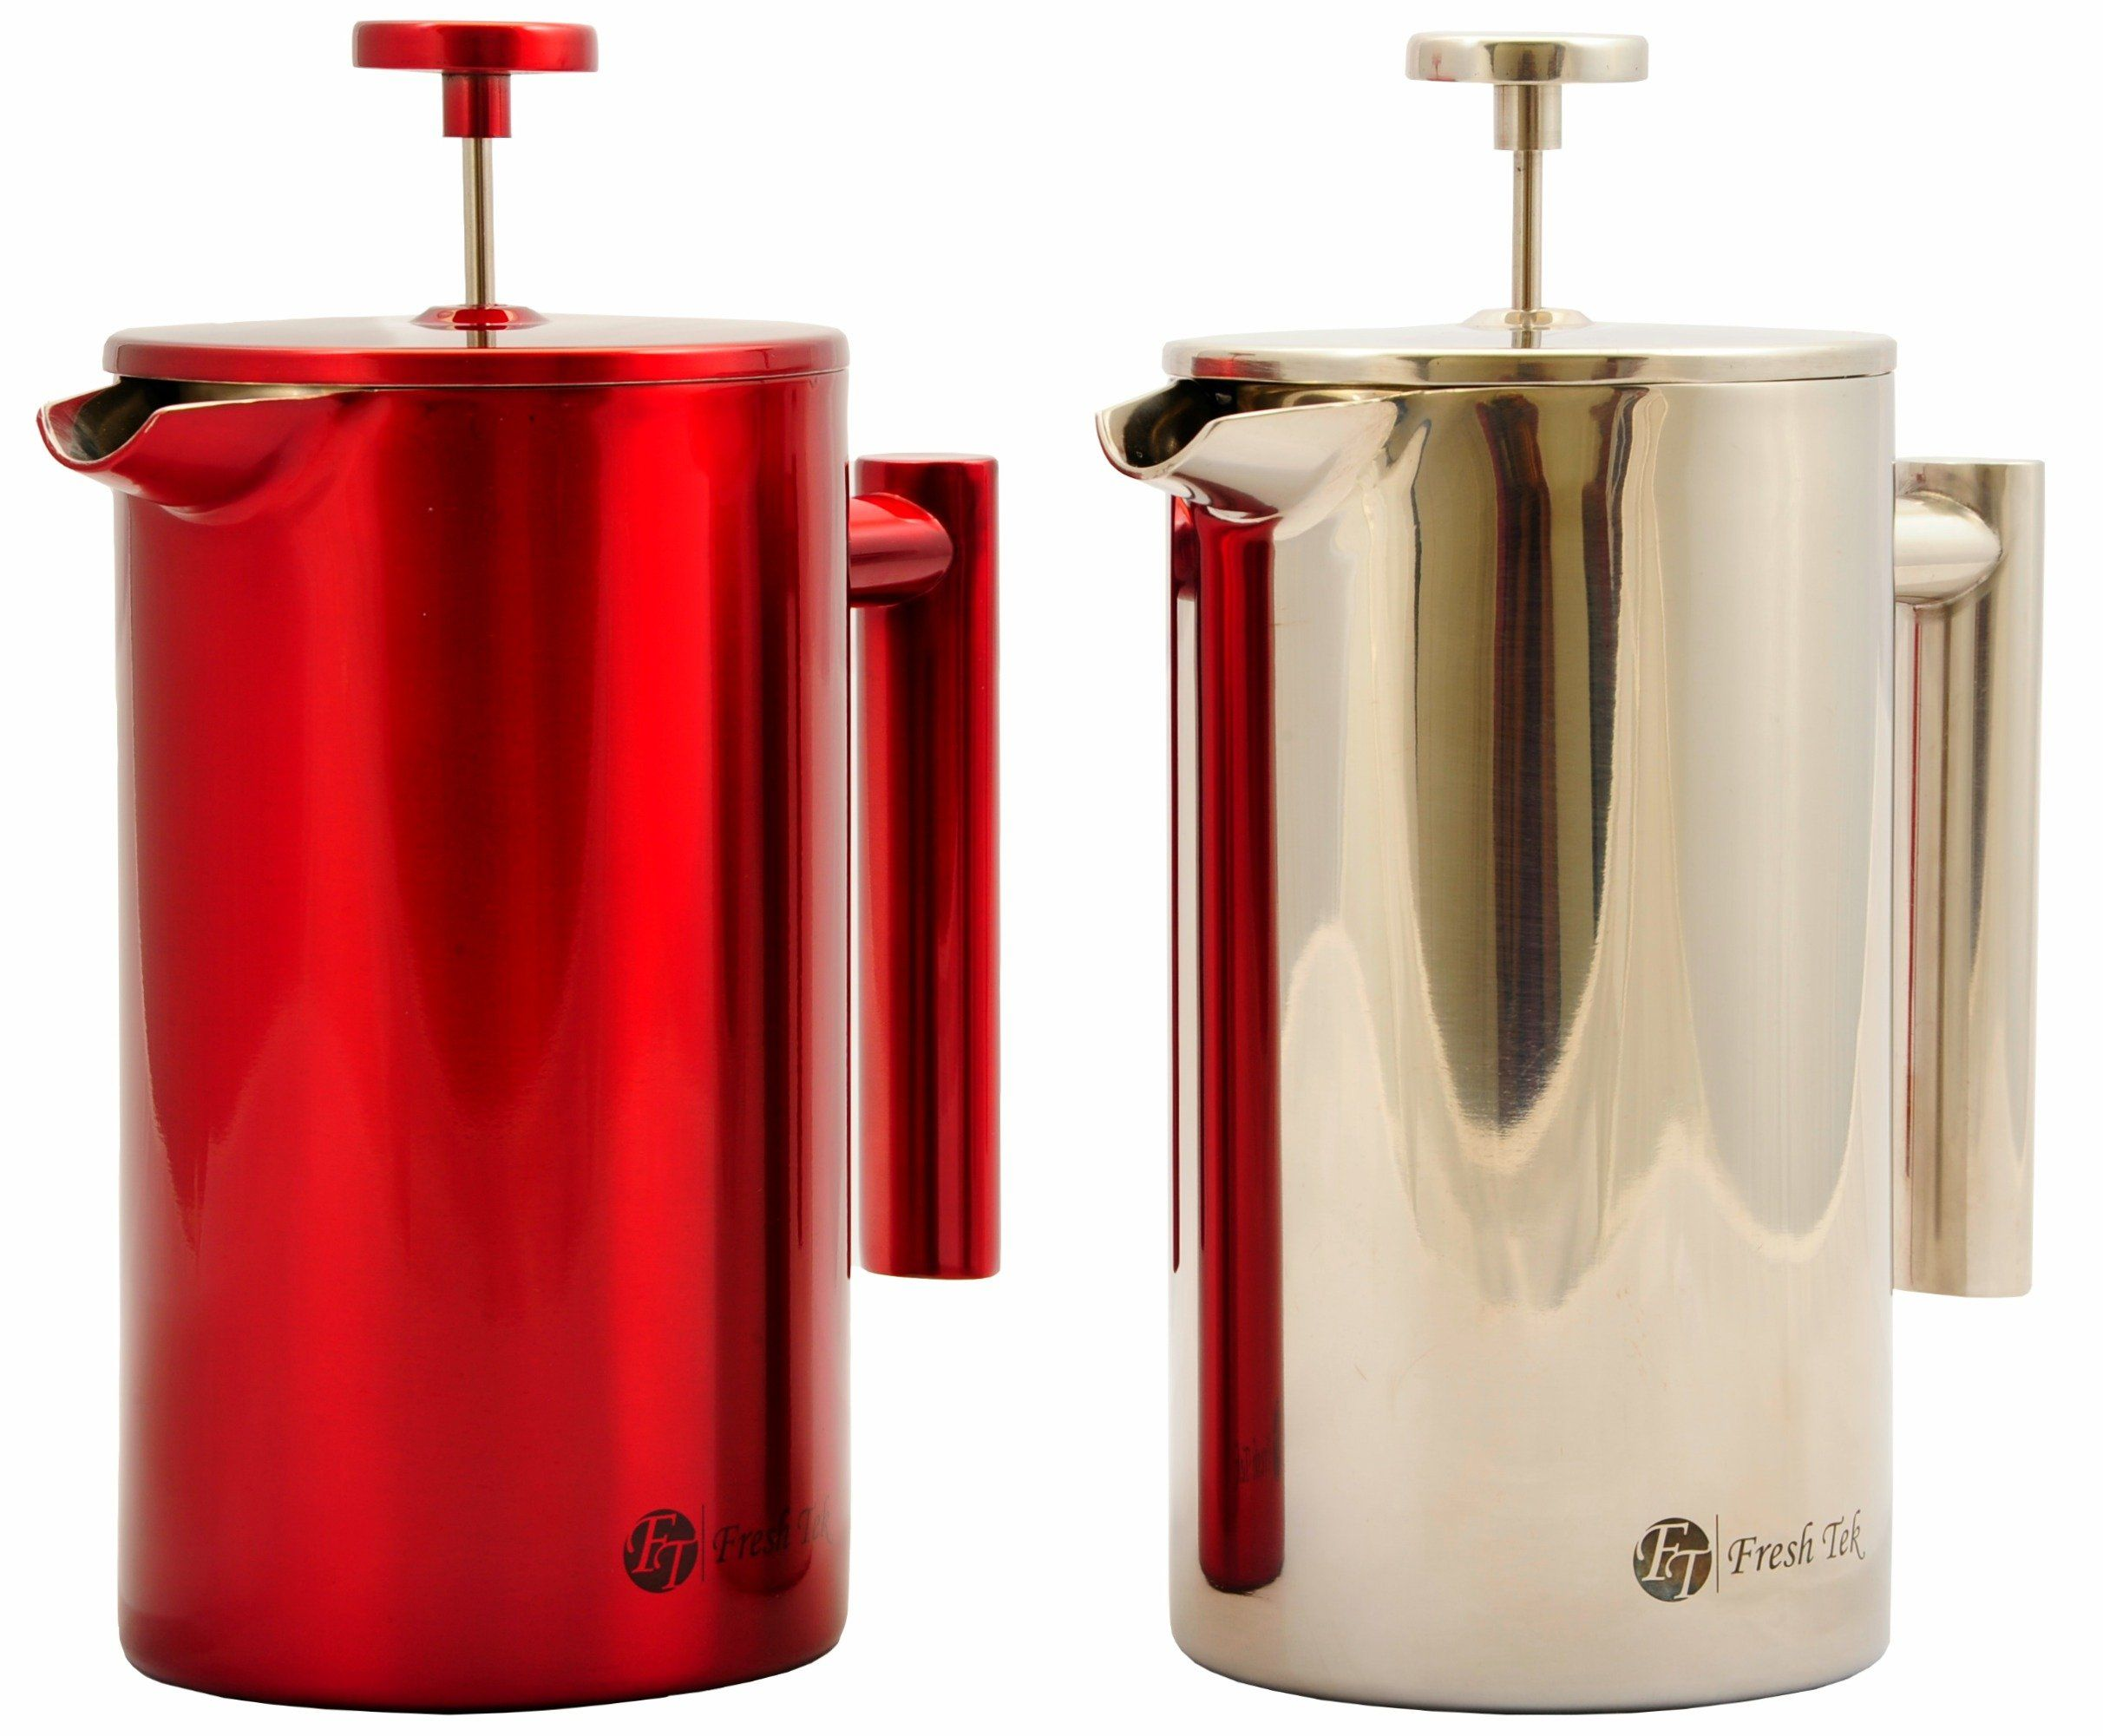 Best french press stainless steel coffee maker double wall